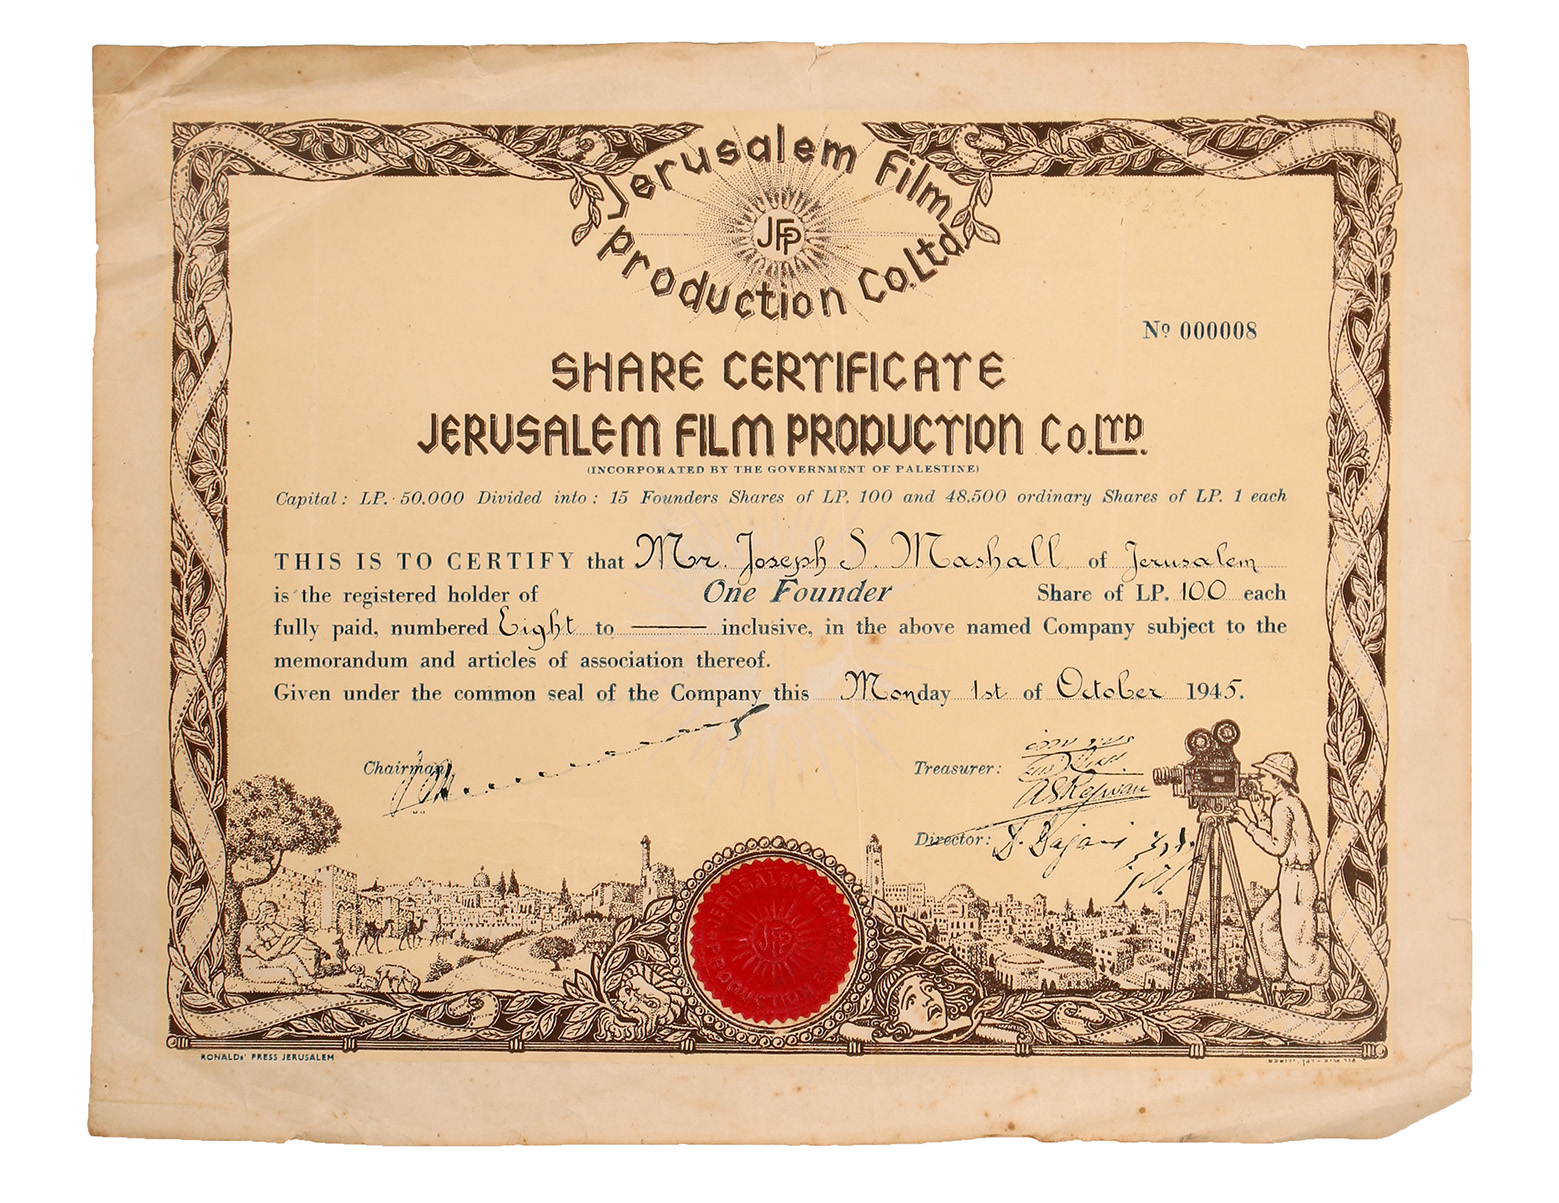 Share certificate designed by meir gur aryeh and zeev raban share and signatures of the companys representatives from 1945 28x35 cm good fair condition stains creases and folding marks 1betcityfo Gallery